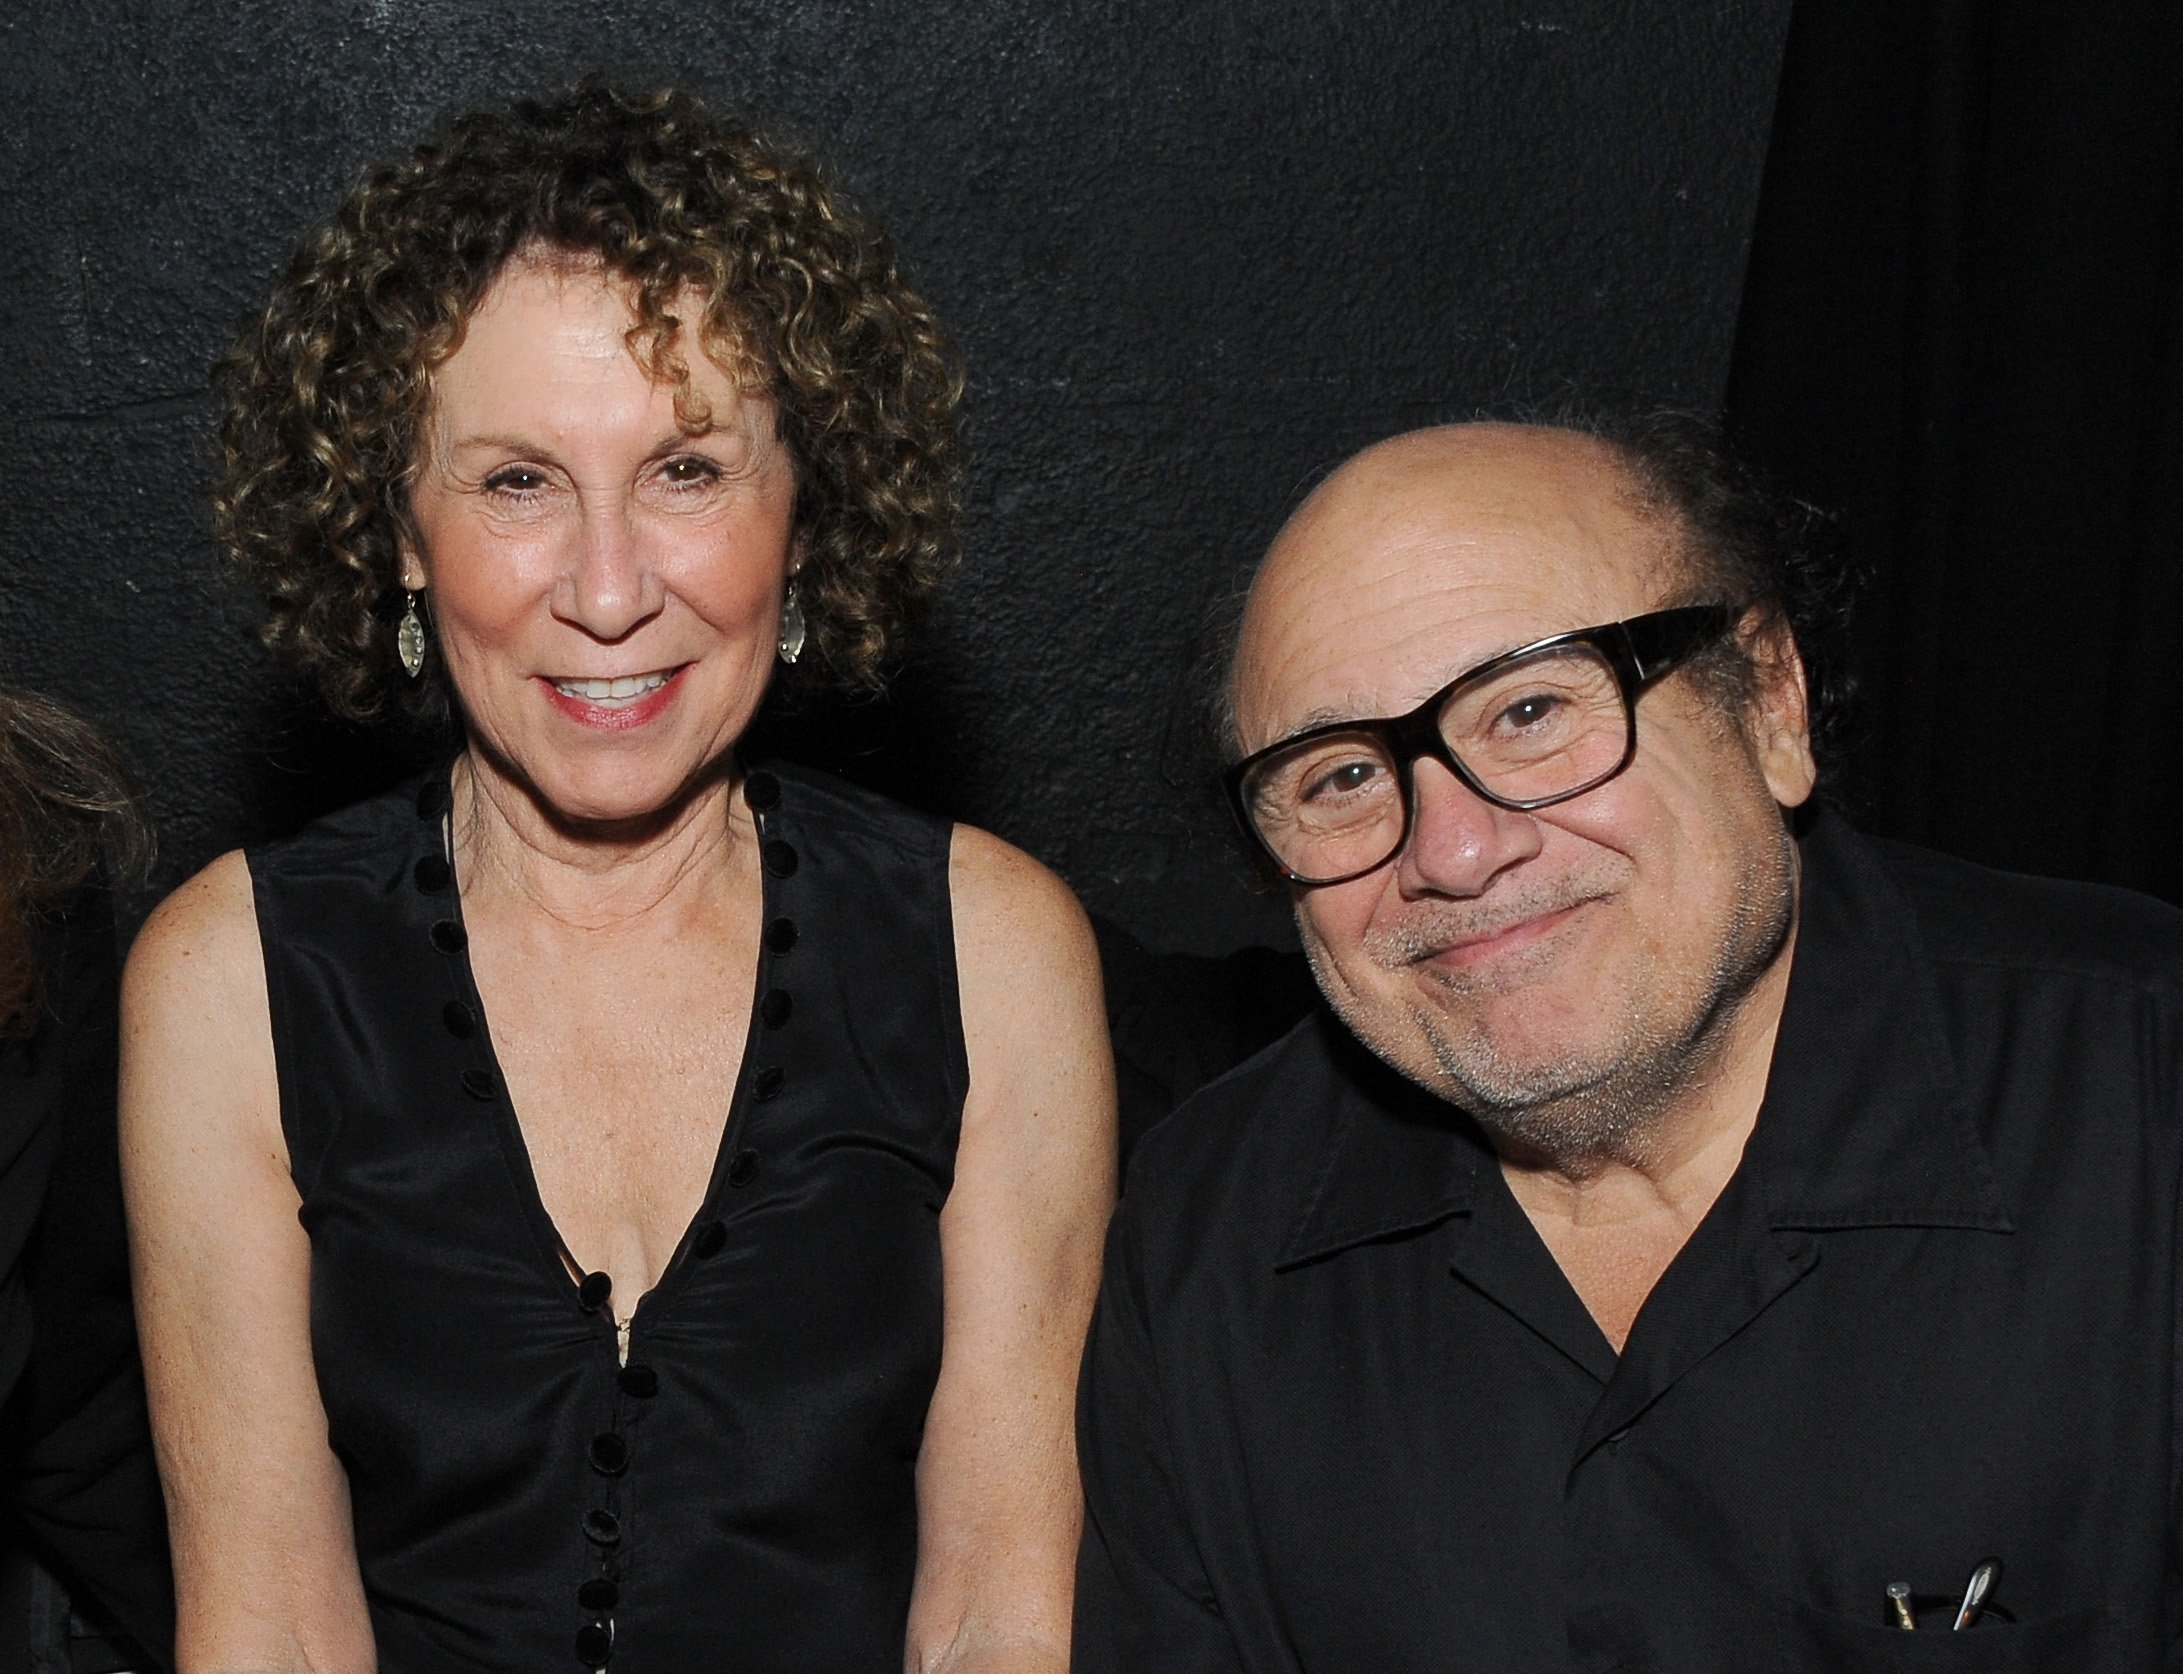 Rhea Perlman and Danny DeVito attend the International Myeloma Foundation 8th Annual Comedy Celebration on November 8, 2014 | Photo: GettyImages